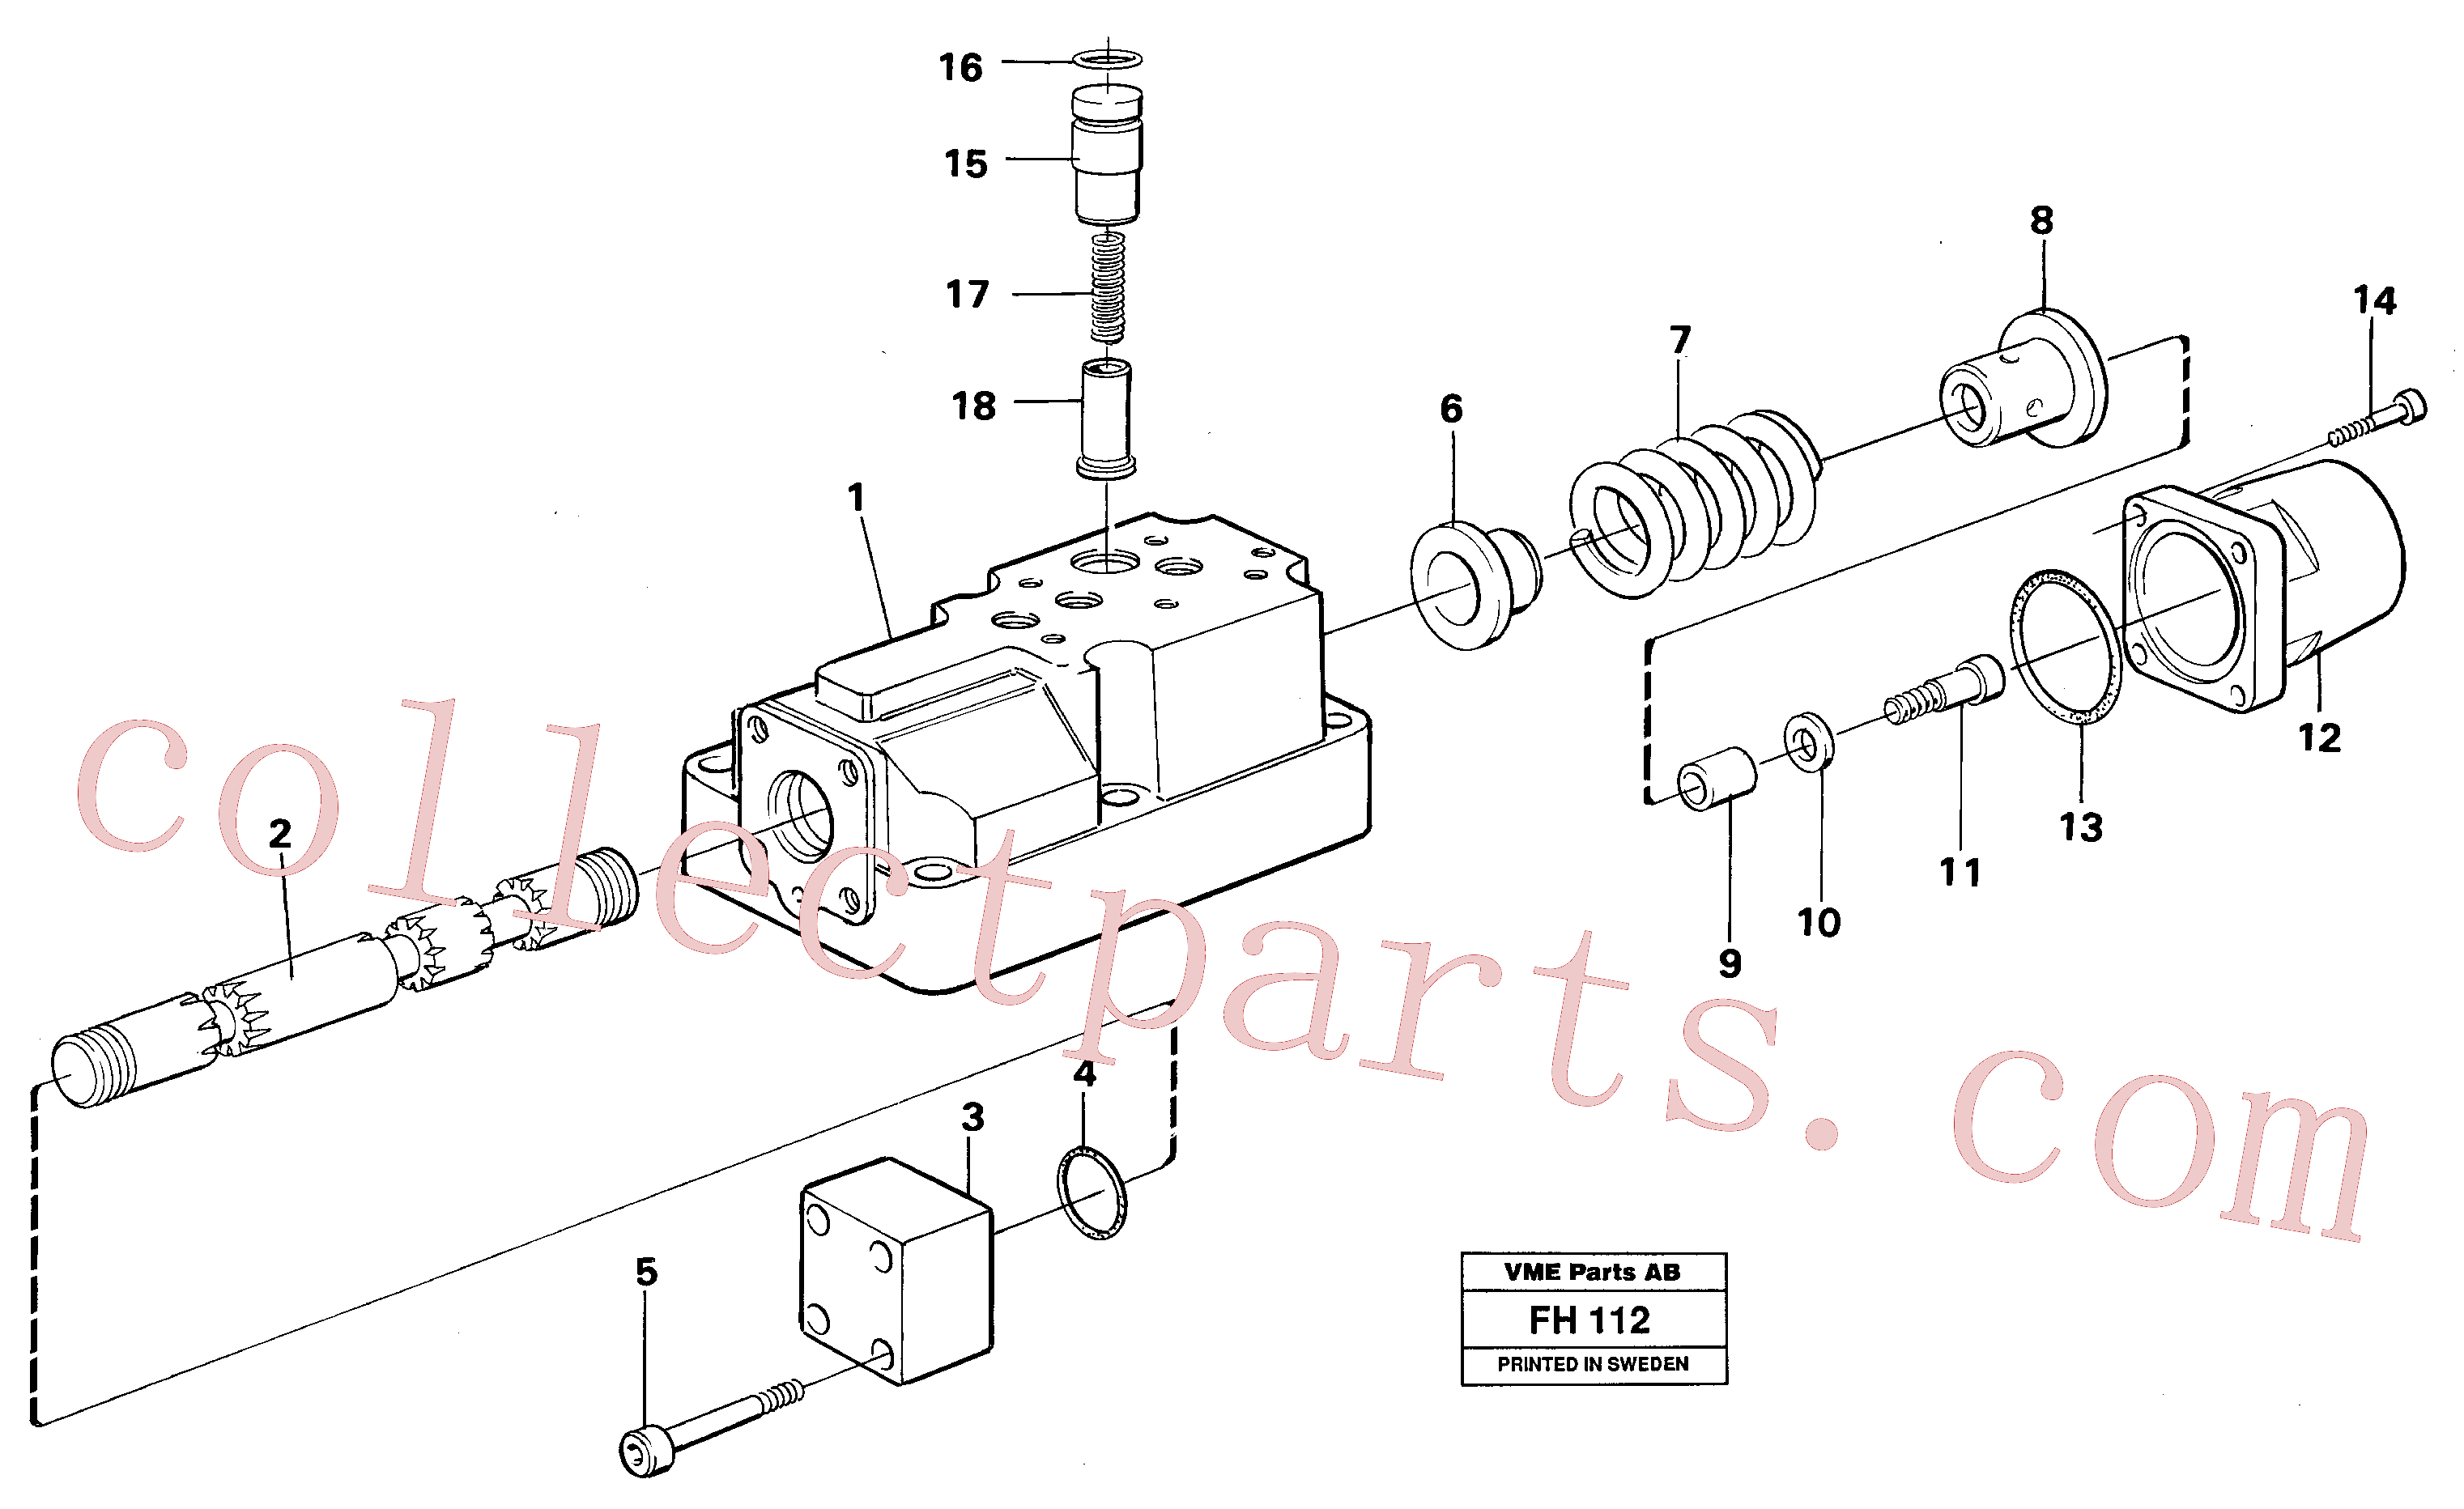 VOE14260699 for Volvo Four-way valve dipper arm, primary(FH112 assembly)